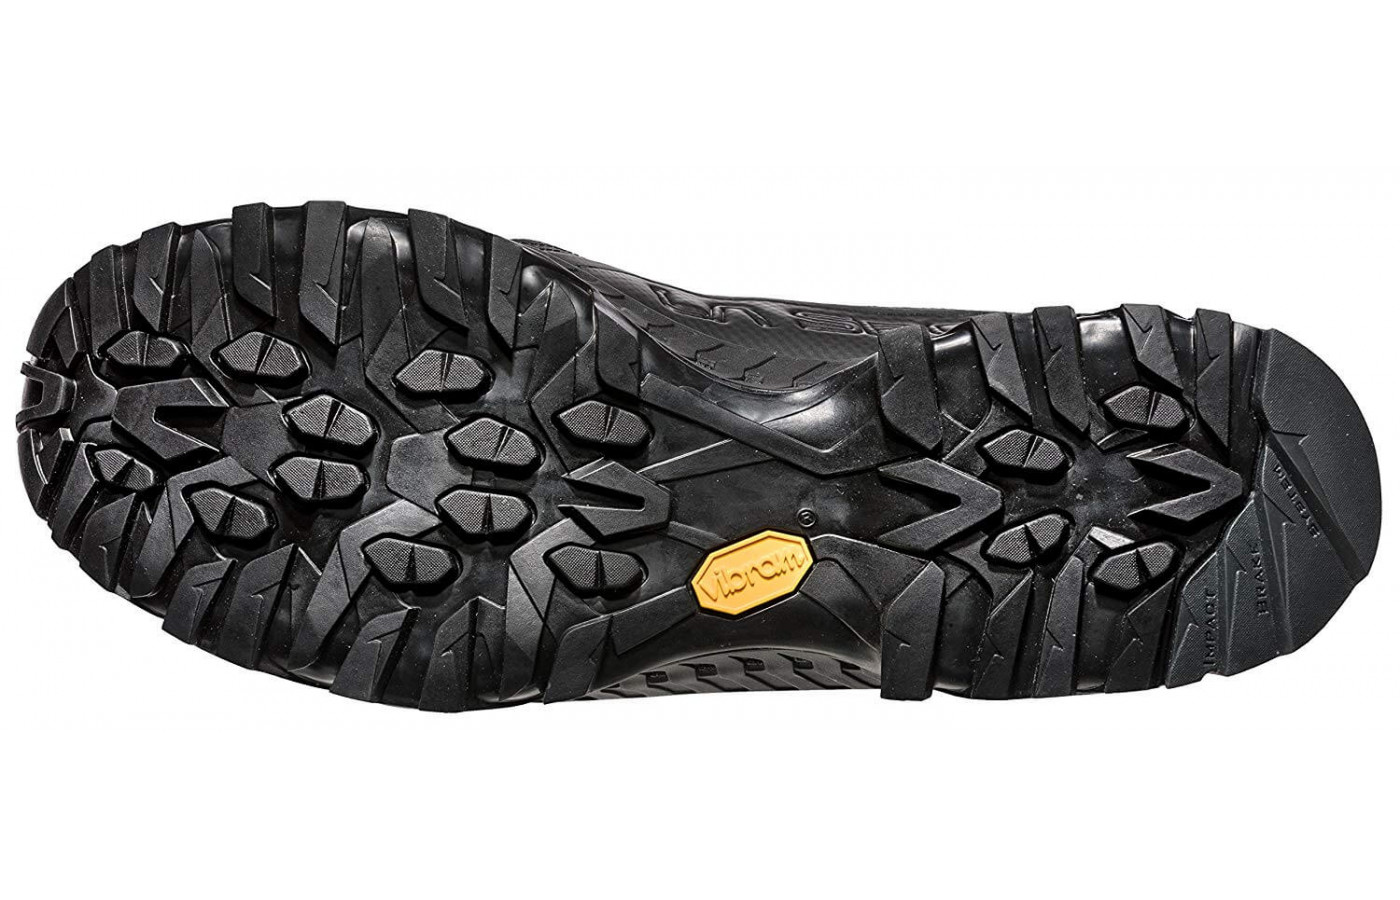 A Vibram XS Trek outsole provides the Spire GTX with incredible traction